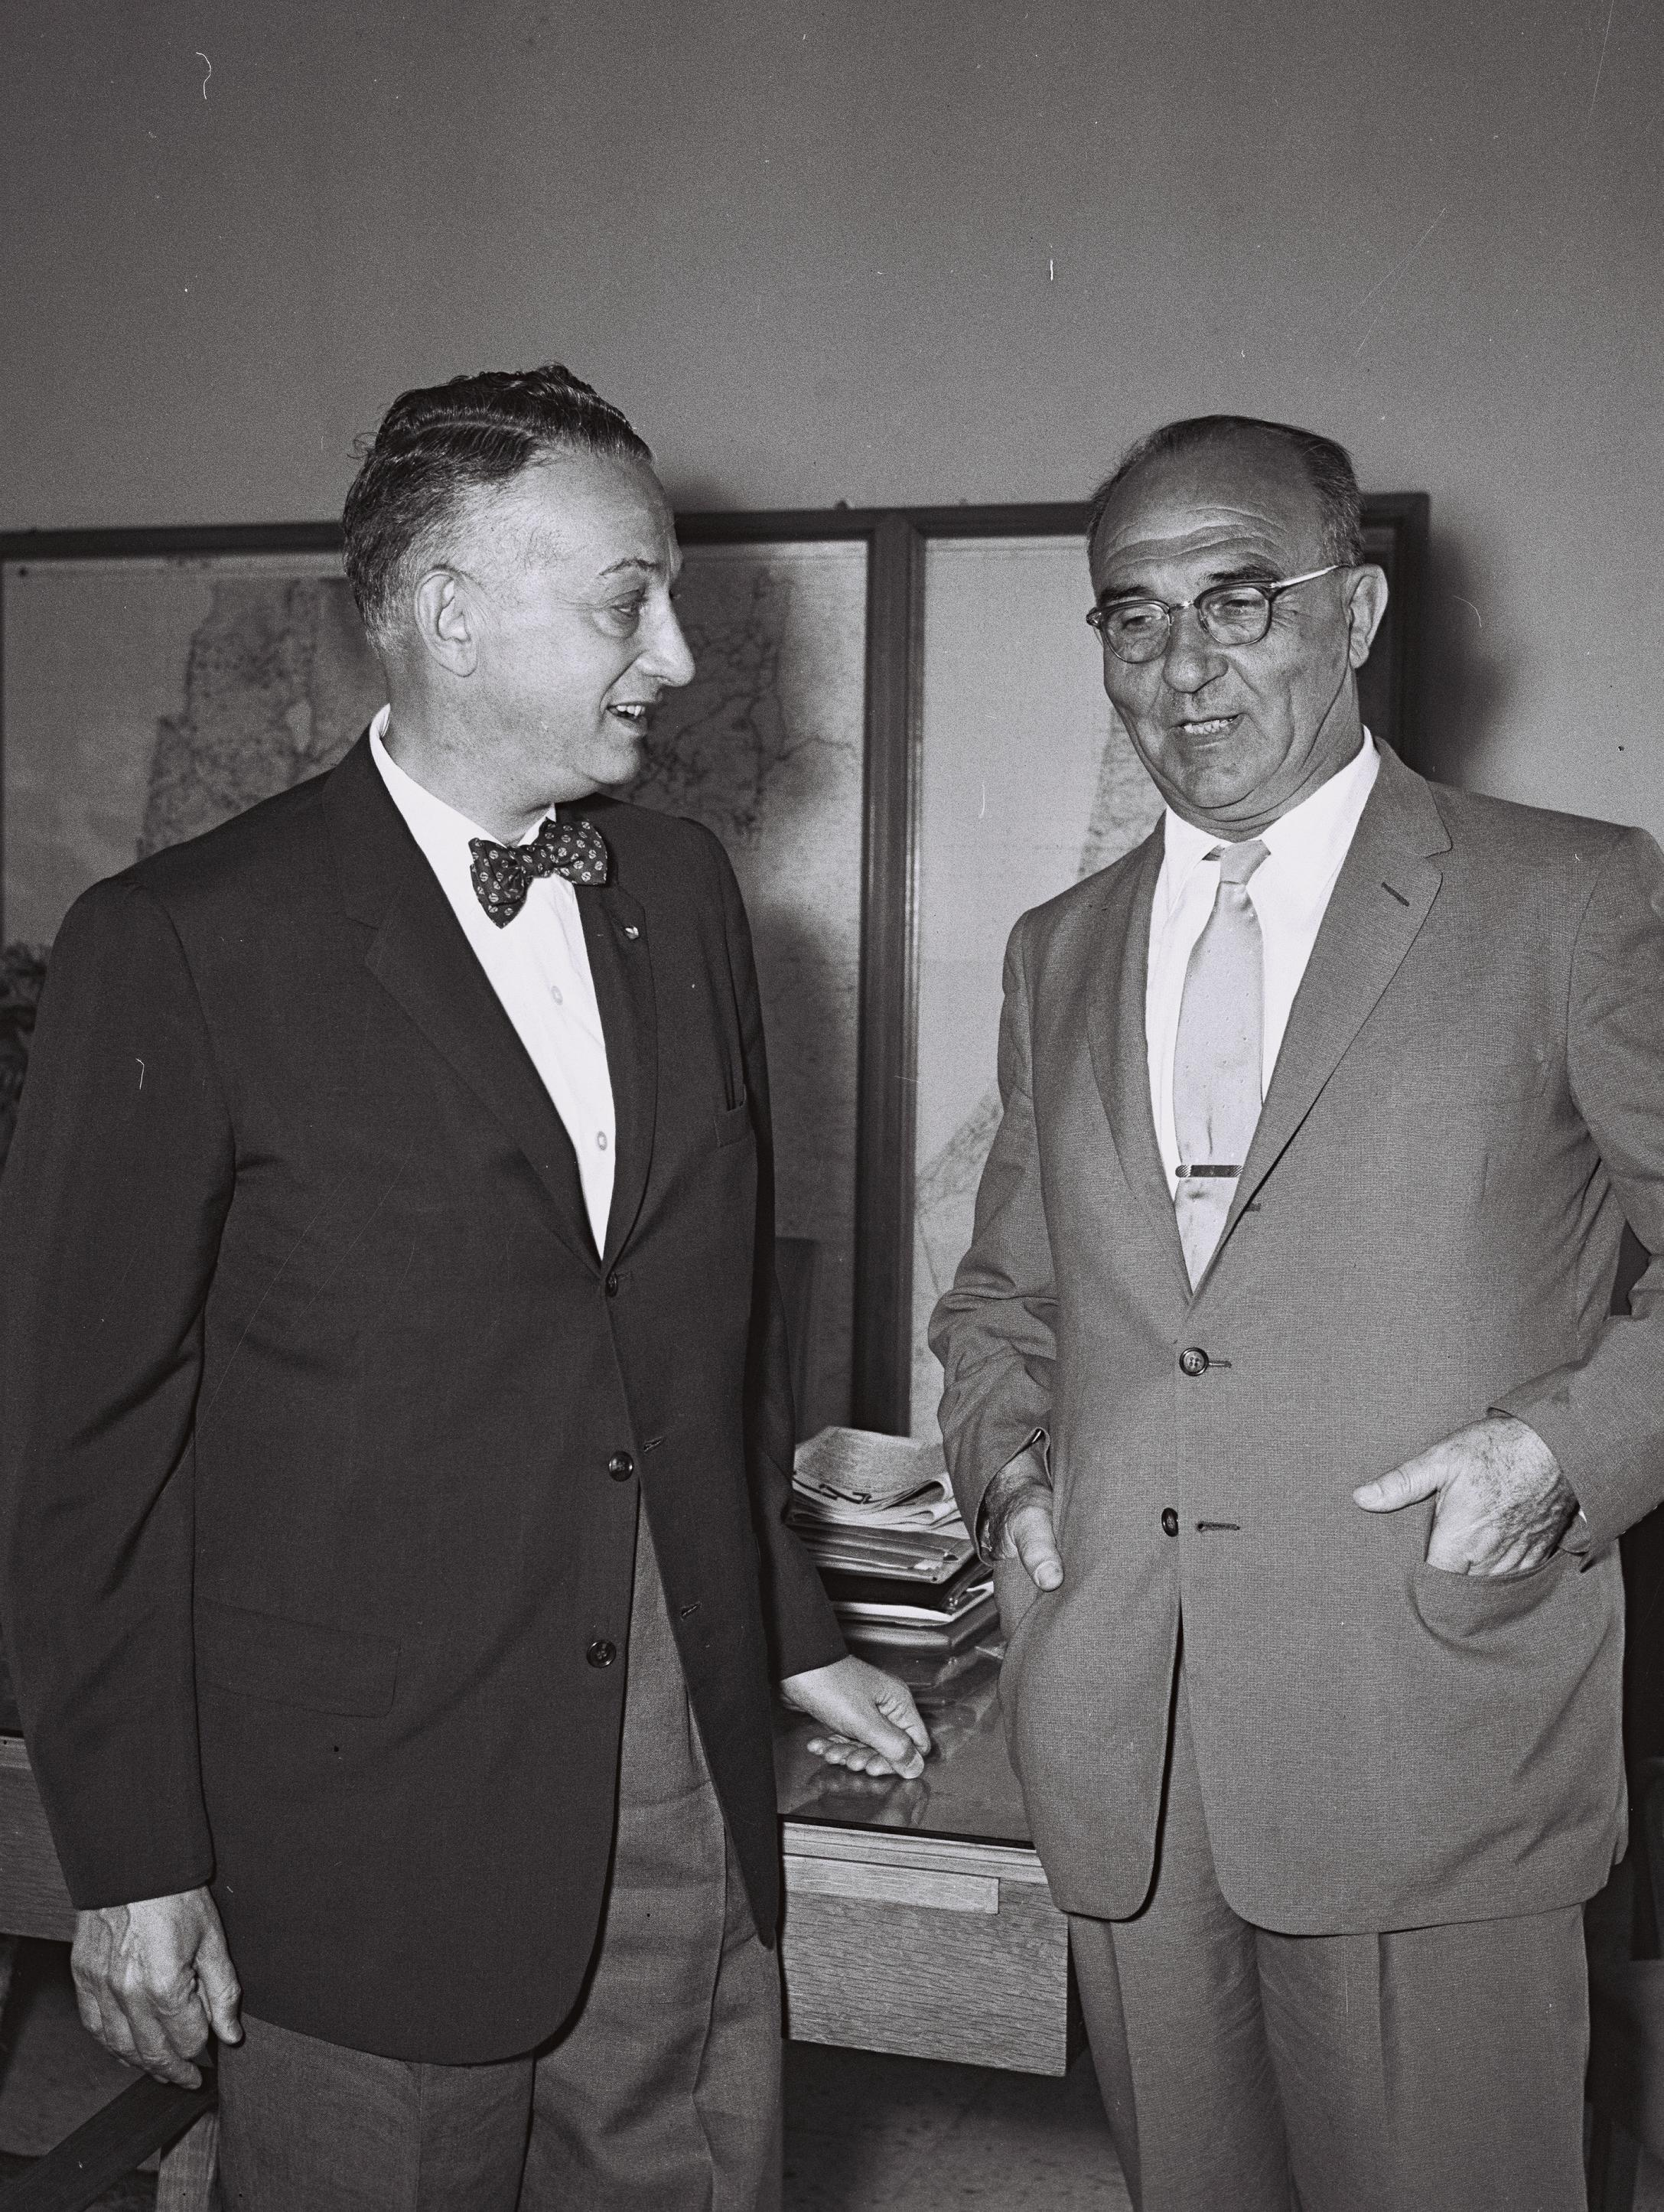 Arthur Levitt Sr. (left), New York State Comptroller, meeting Levi Eshkol, Israel's Finance Minister at the time. August 19, 1959